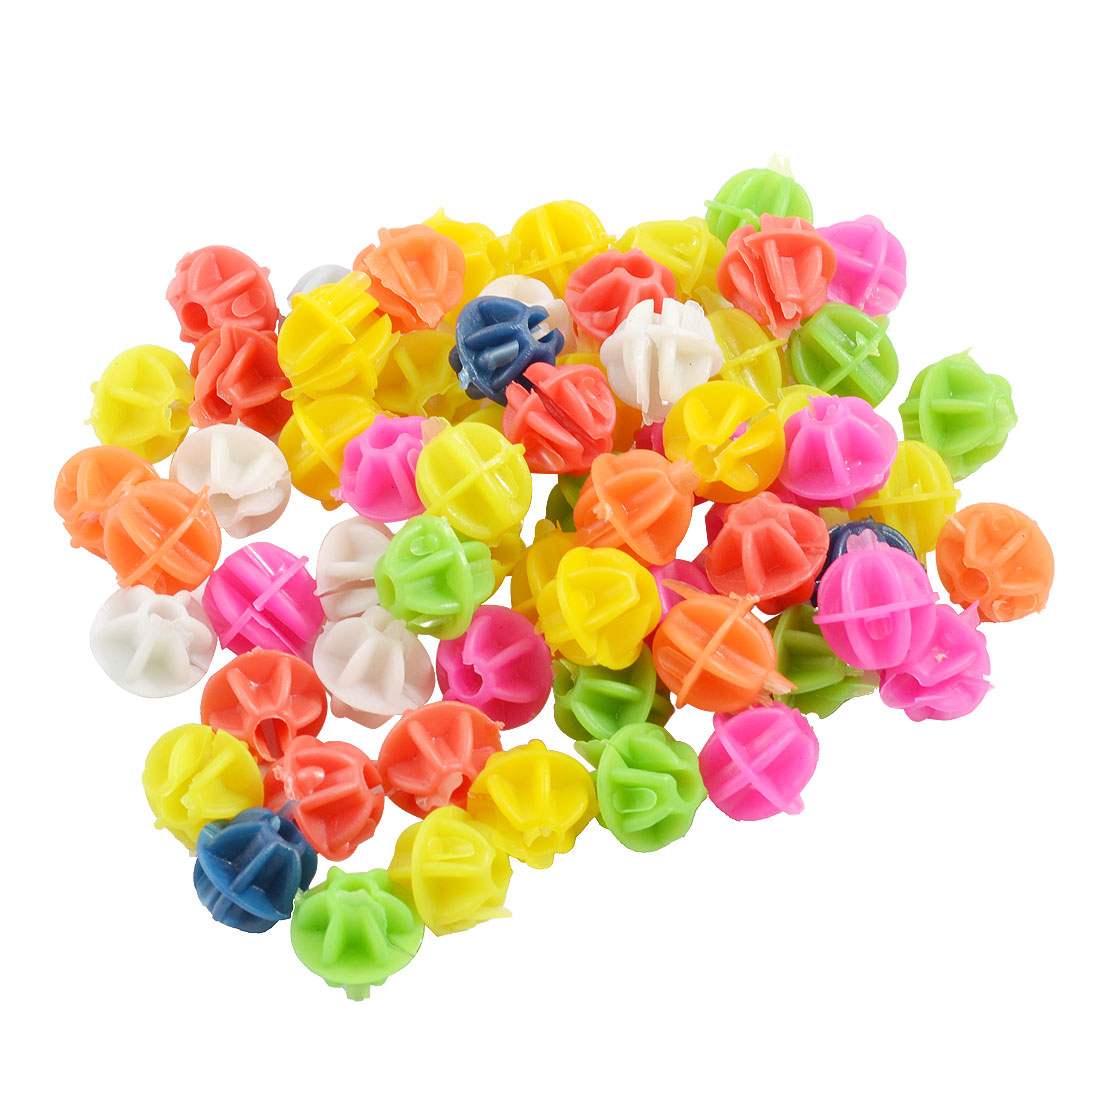 "Bike Bicycle Spoke Colorful 0.55"" Dia Plastic Beads Decor 94 Pcs"